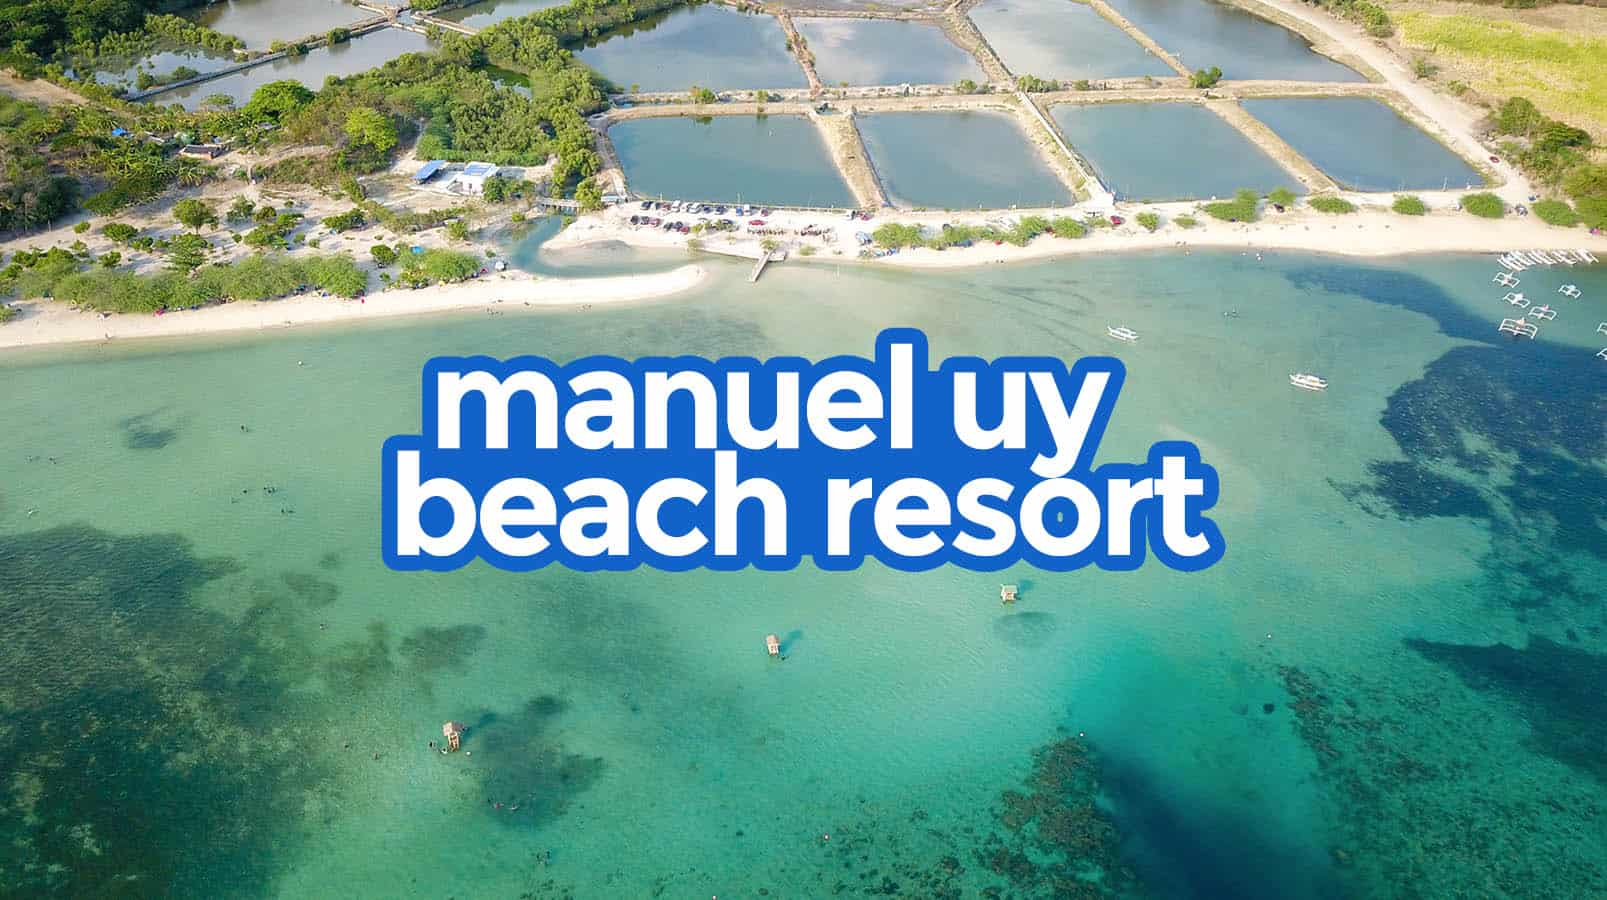 MANUEL UY BEACH RESORT, CALATAGAN: Travel Guide with Itinerary & Budget 2020